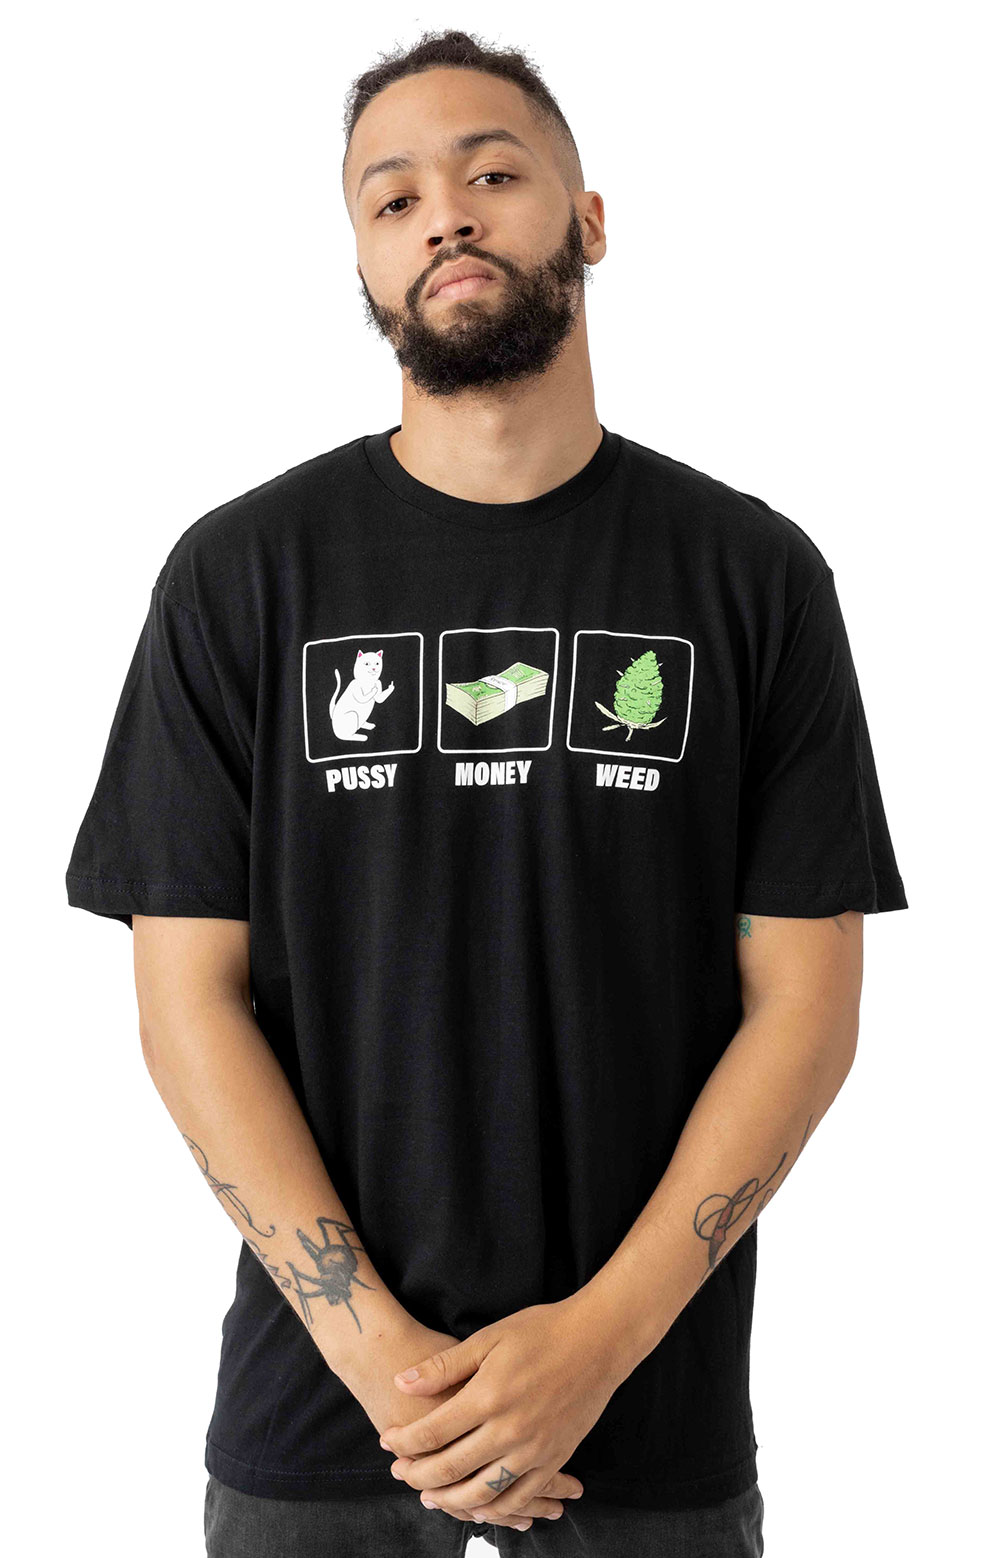 Pu$$y, Money, Weed T-Shirt - Black